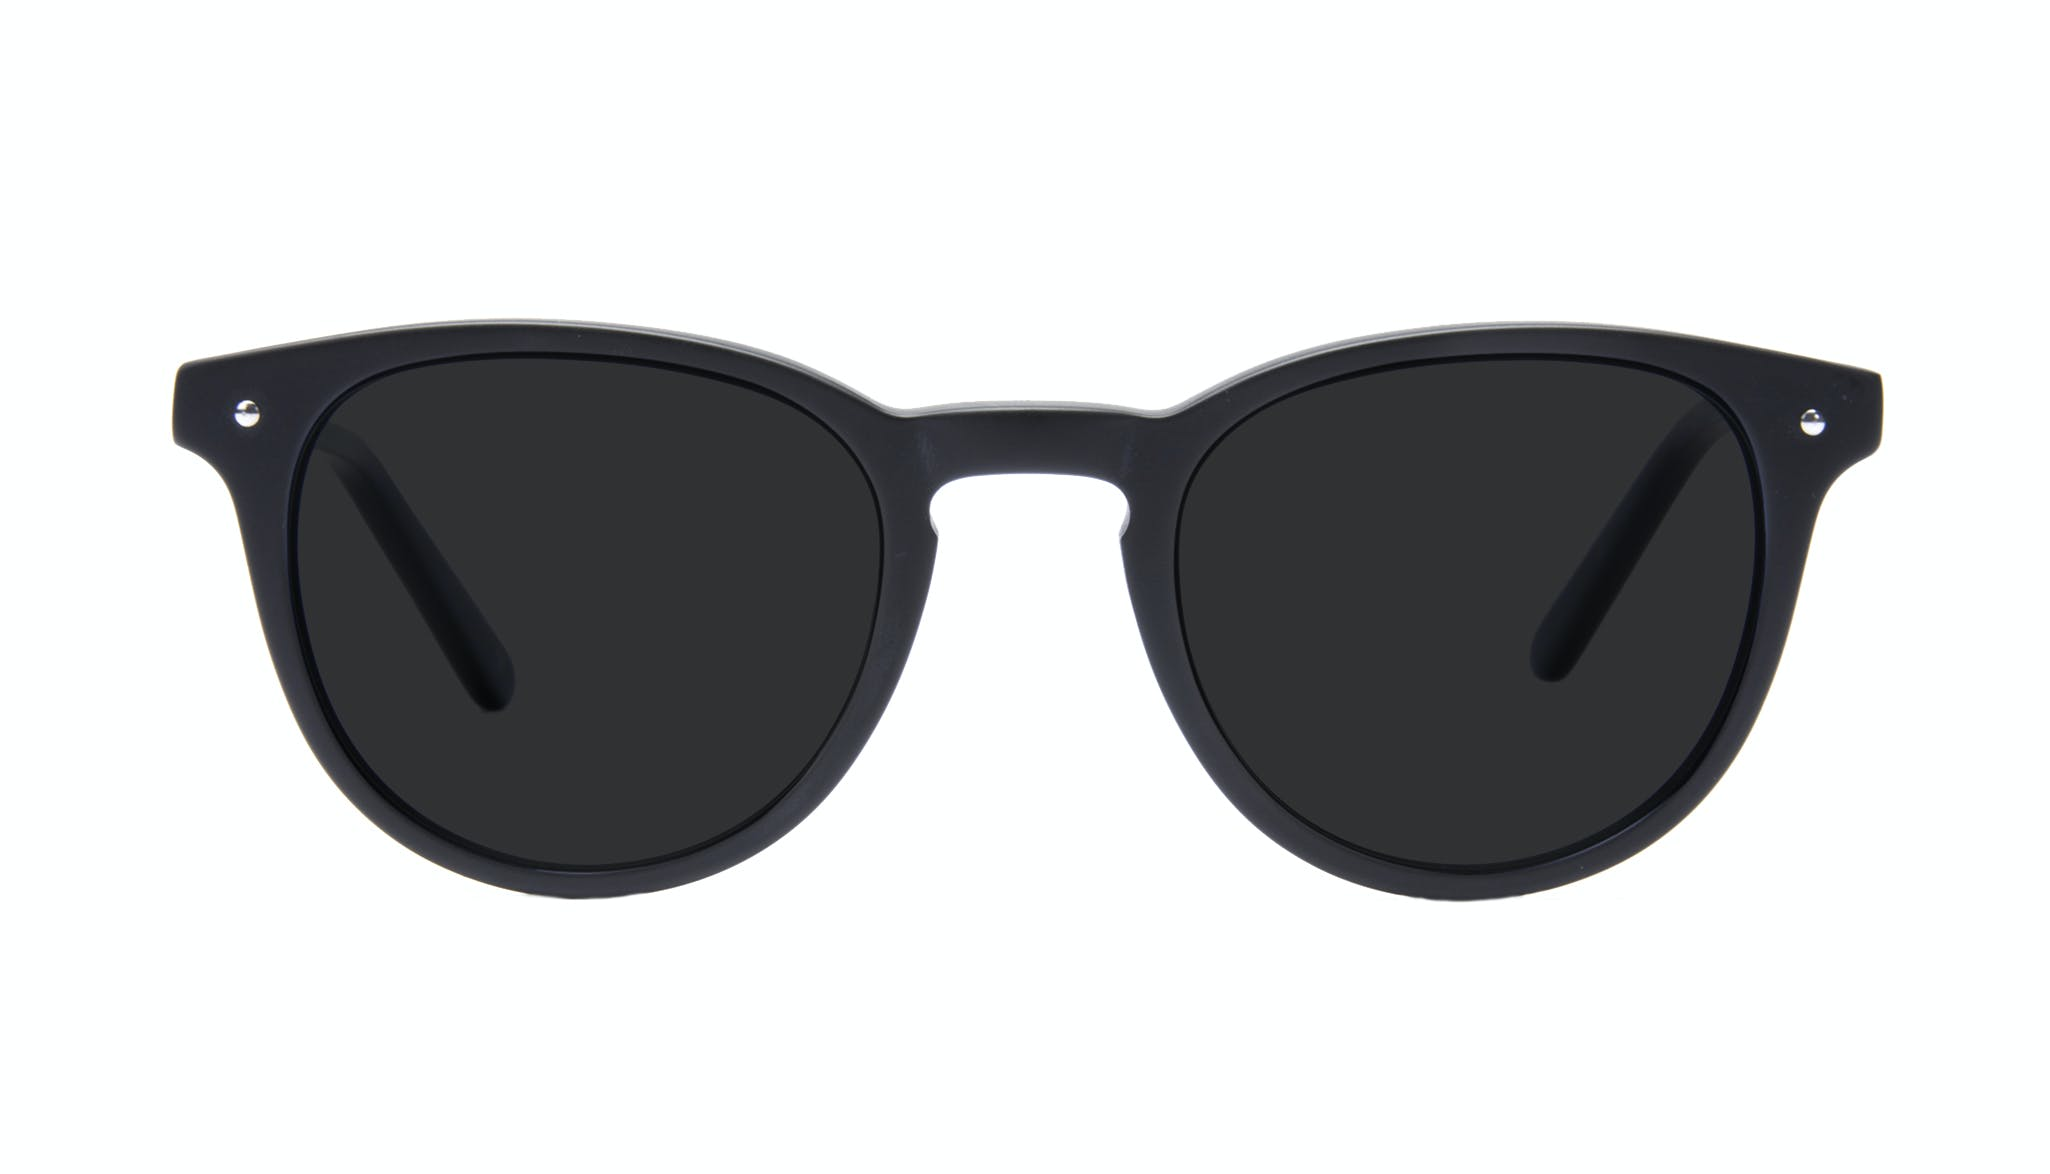 Affordable Fashion Glasses Round Sunglasses Men Cult Matt Black